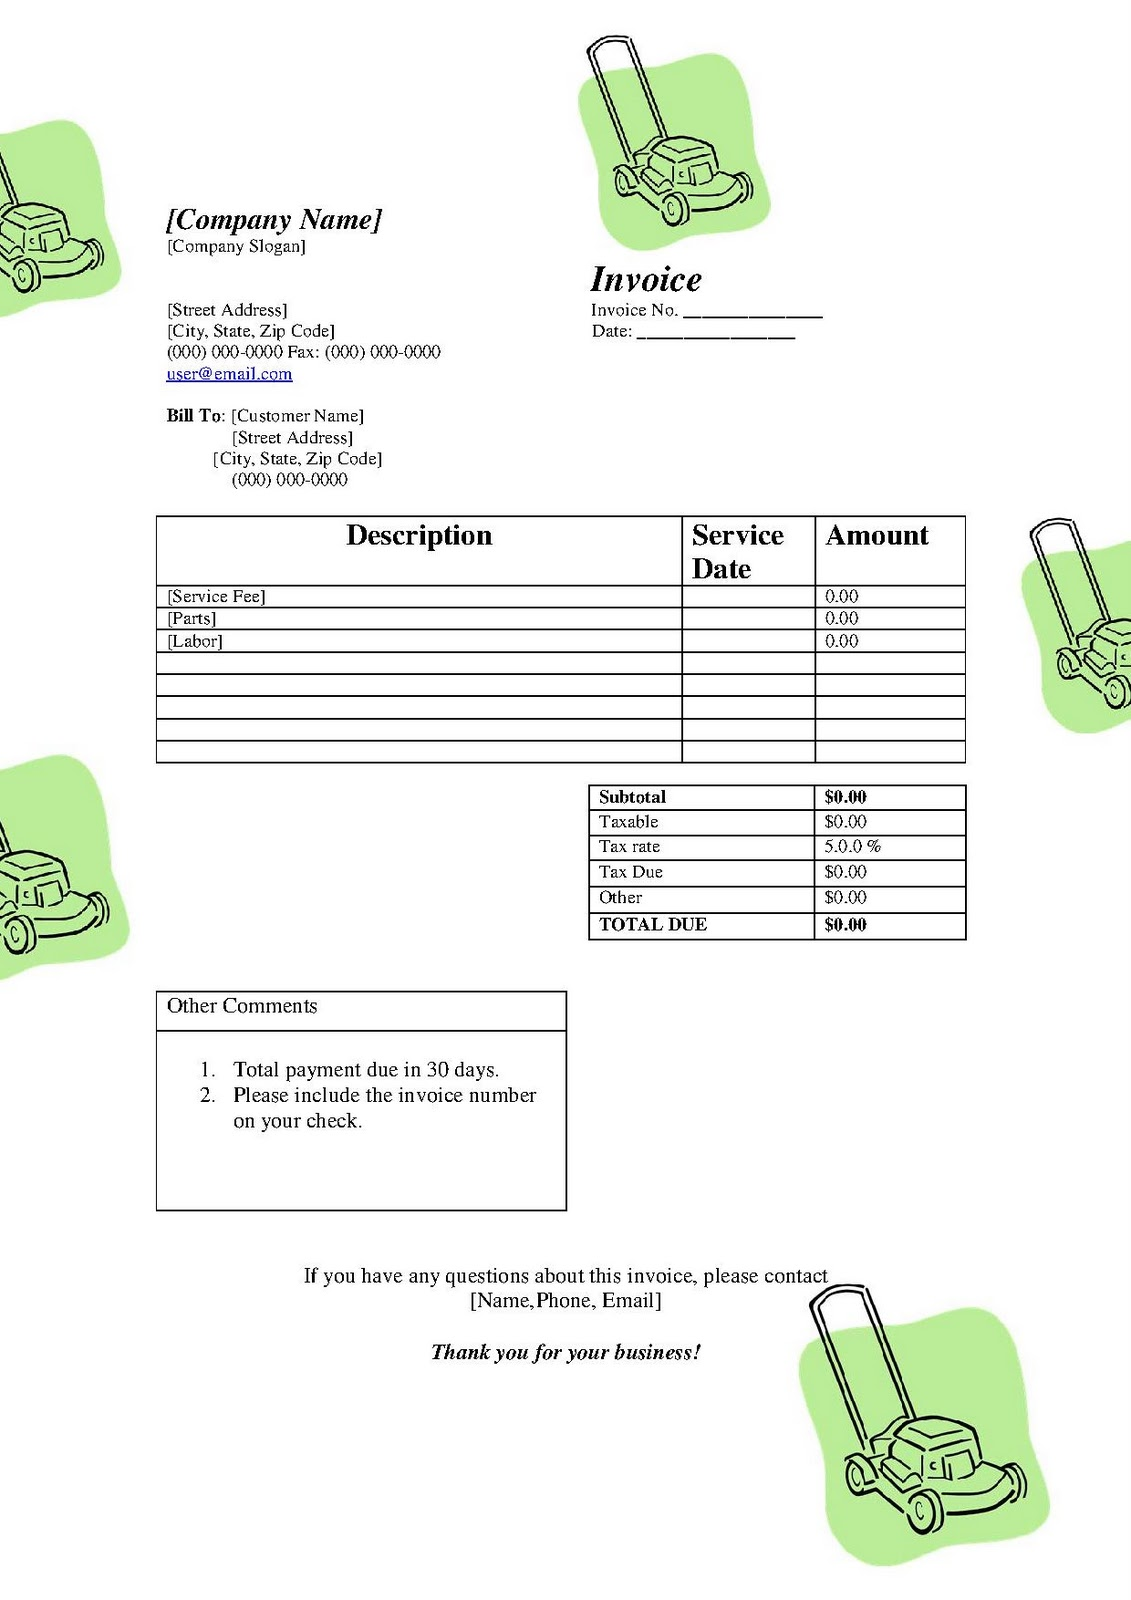 simple landscaping invoice resume builder simple landscaping invoice lawn care and landscaping invoice templates templates lawn service lanscaping business